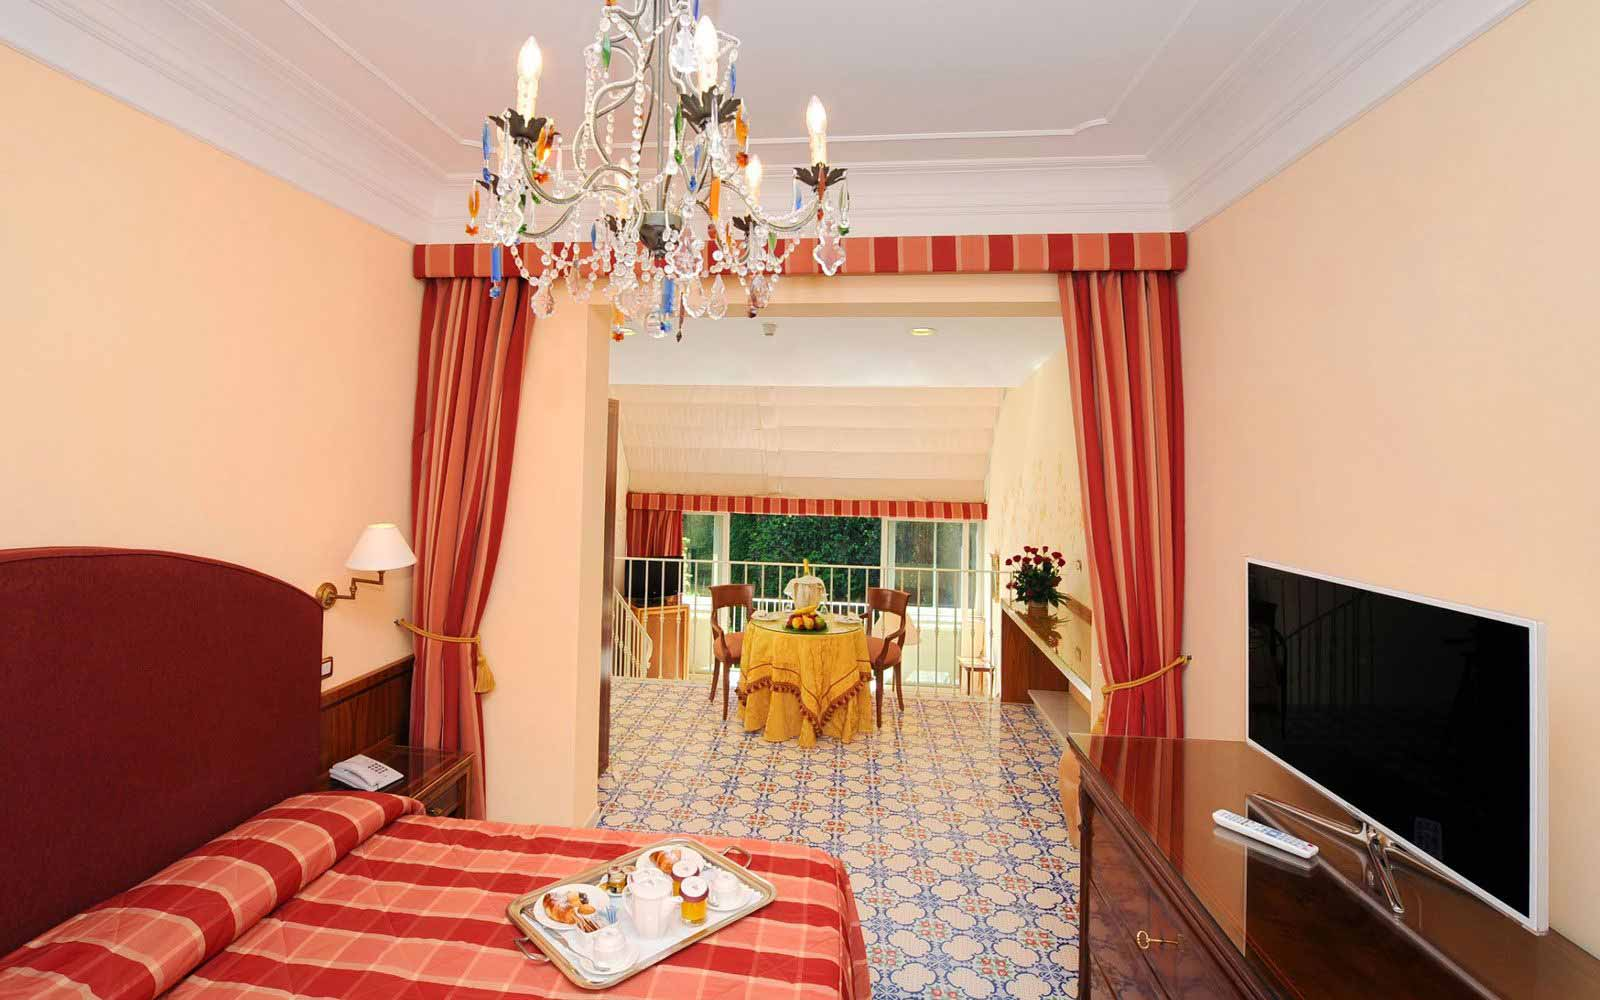 Suite at Hotel Antiche Mura